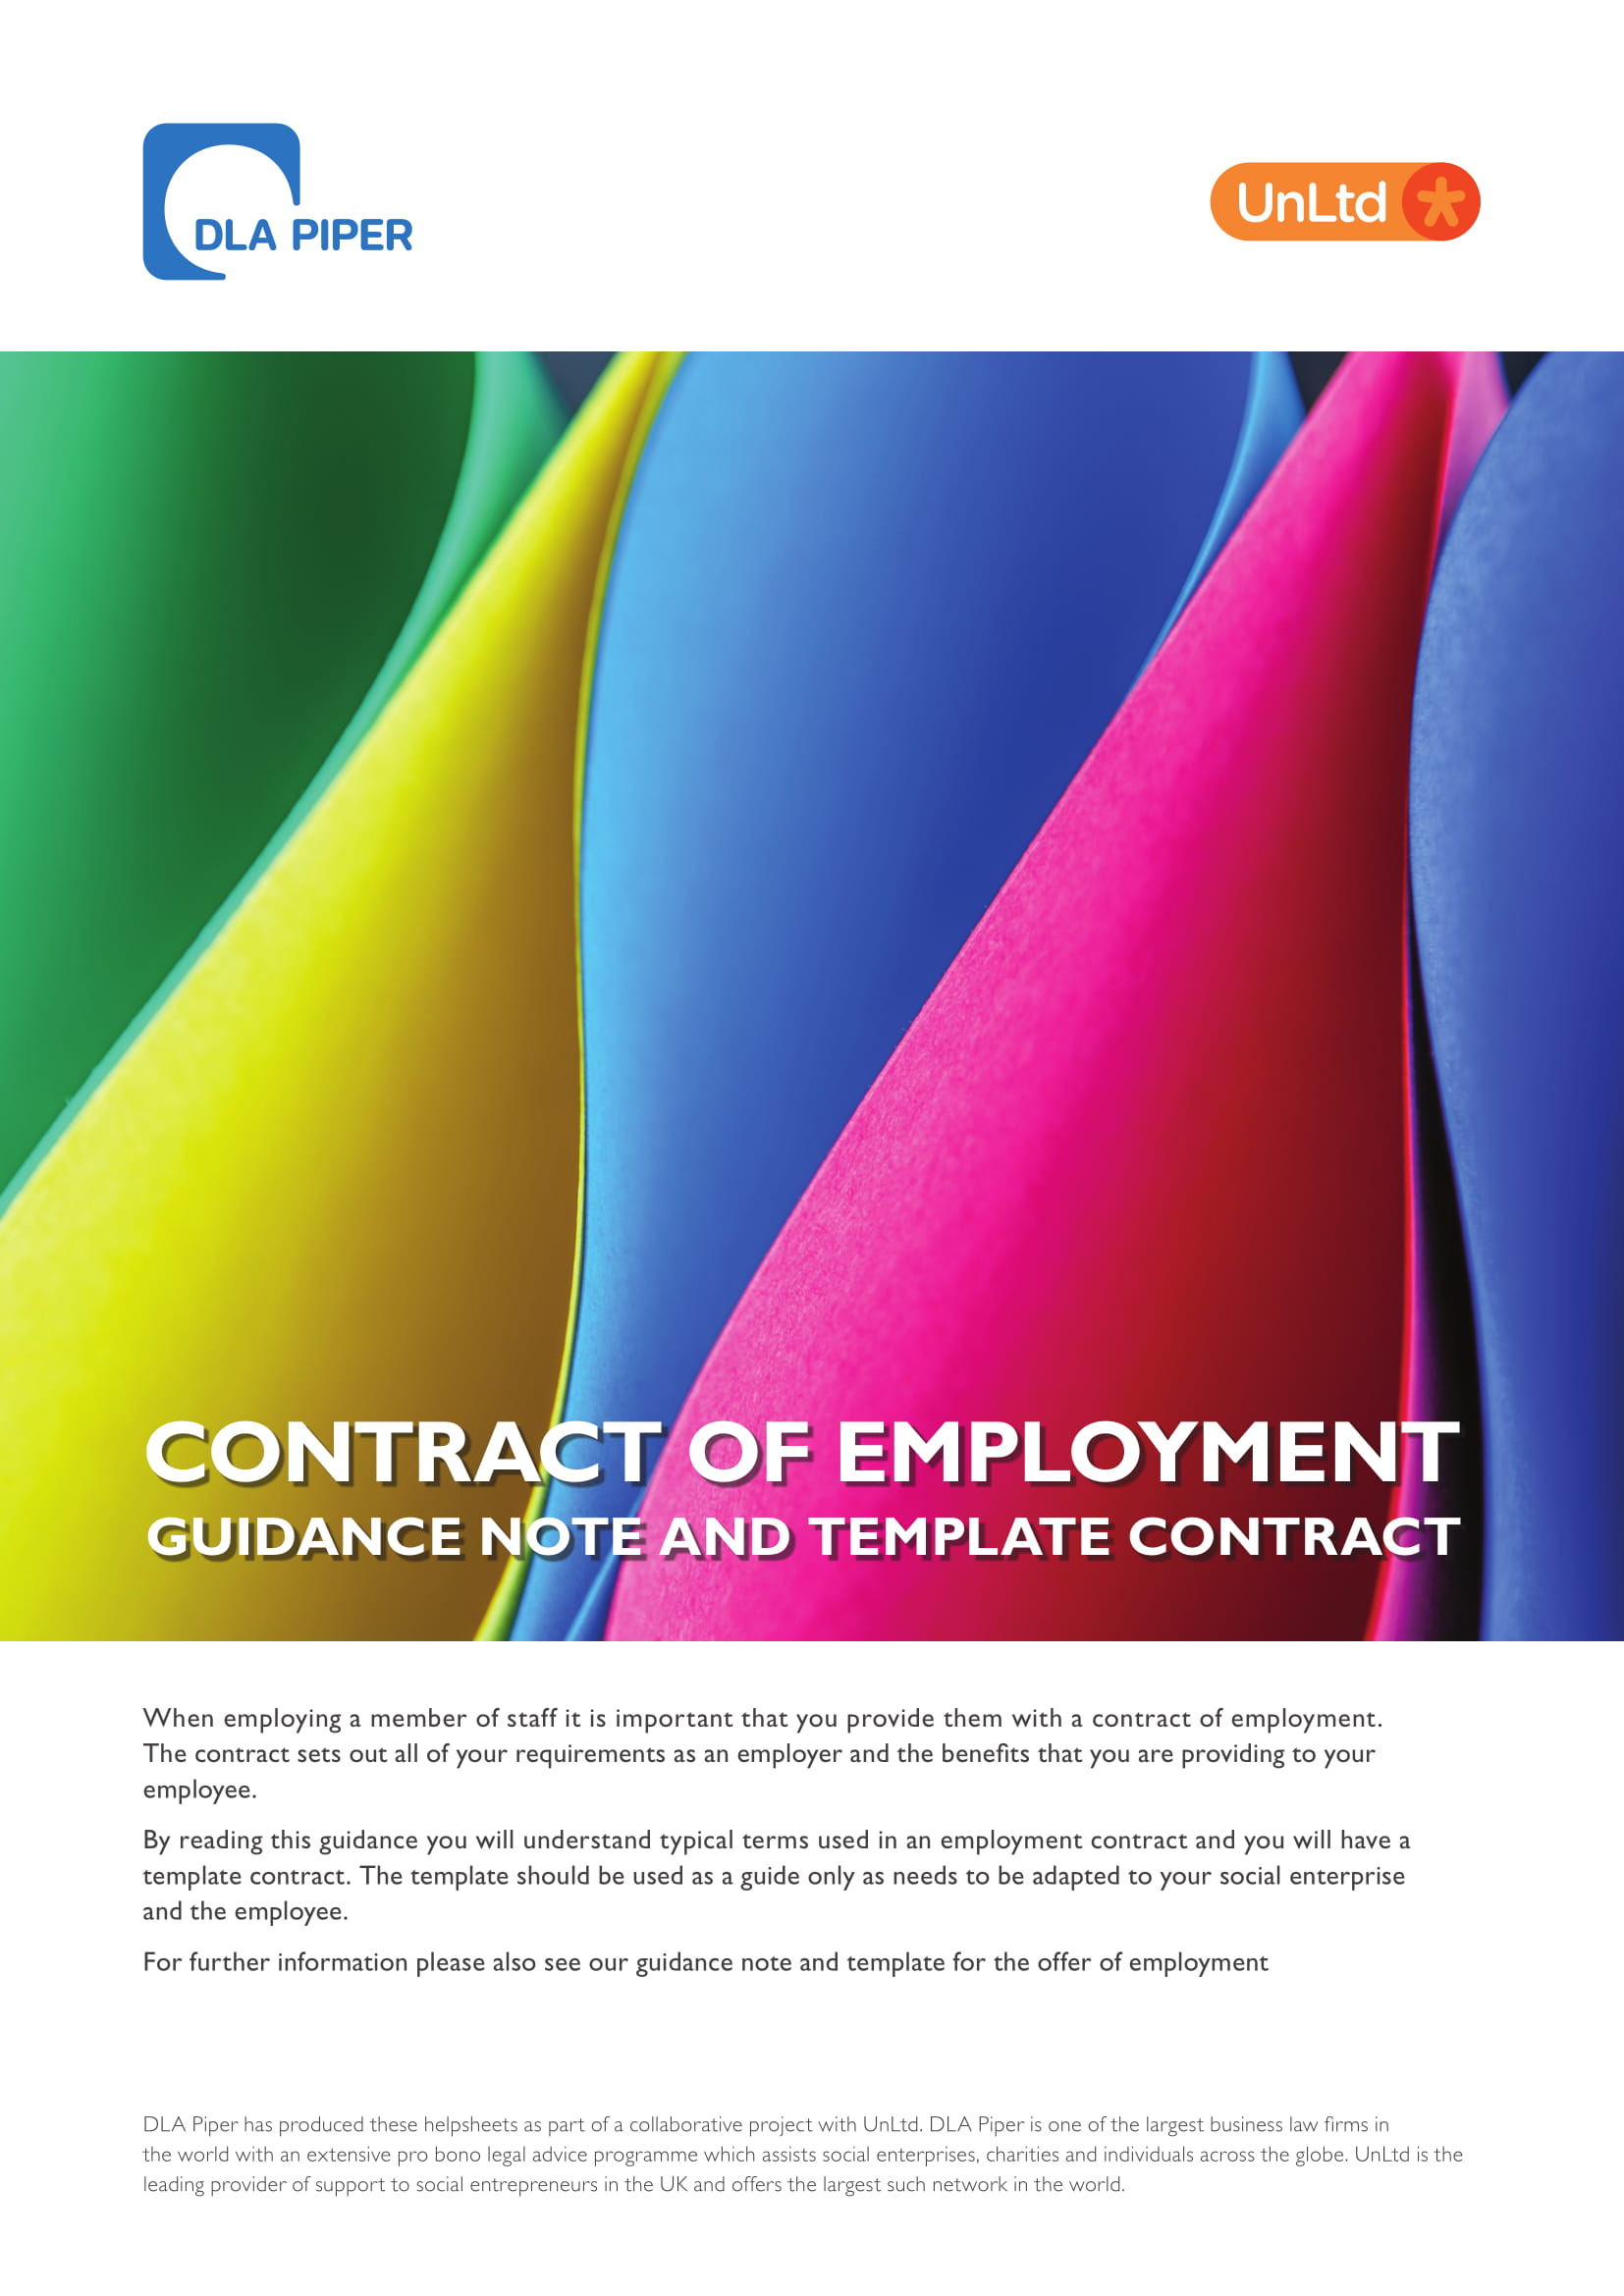 contract of employment guidance note and template contract